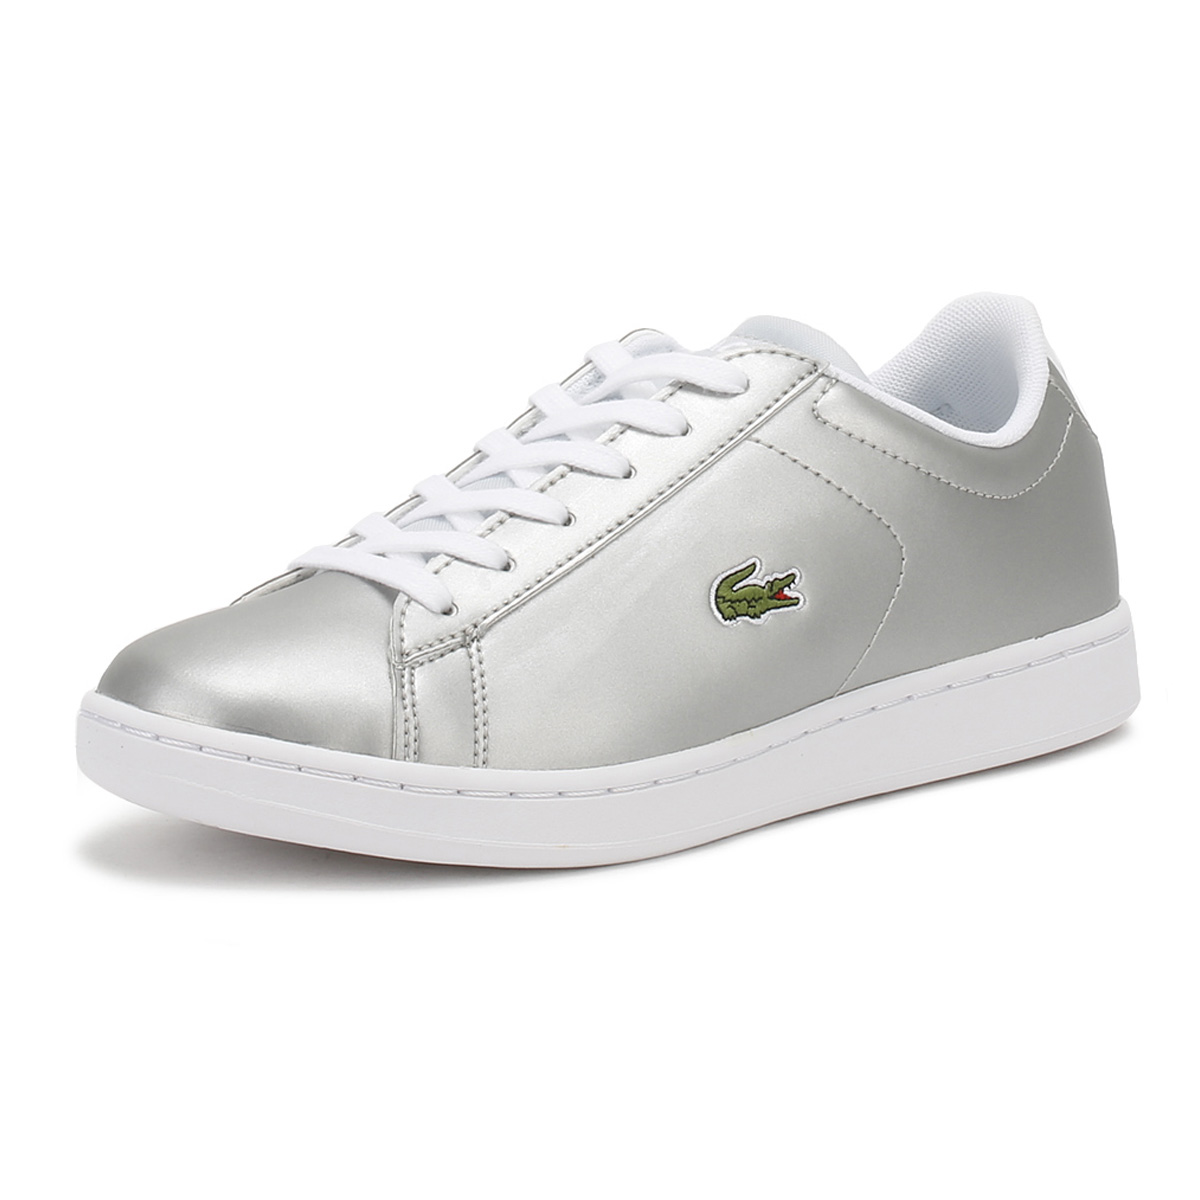 lacoste shoes first copyright law